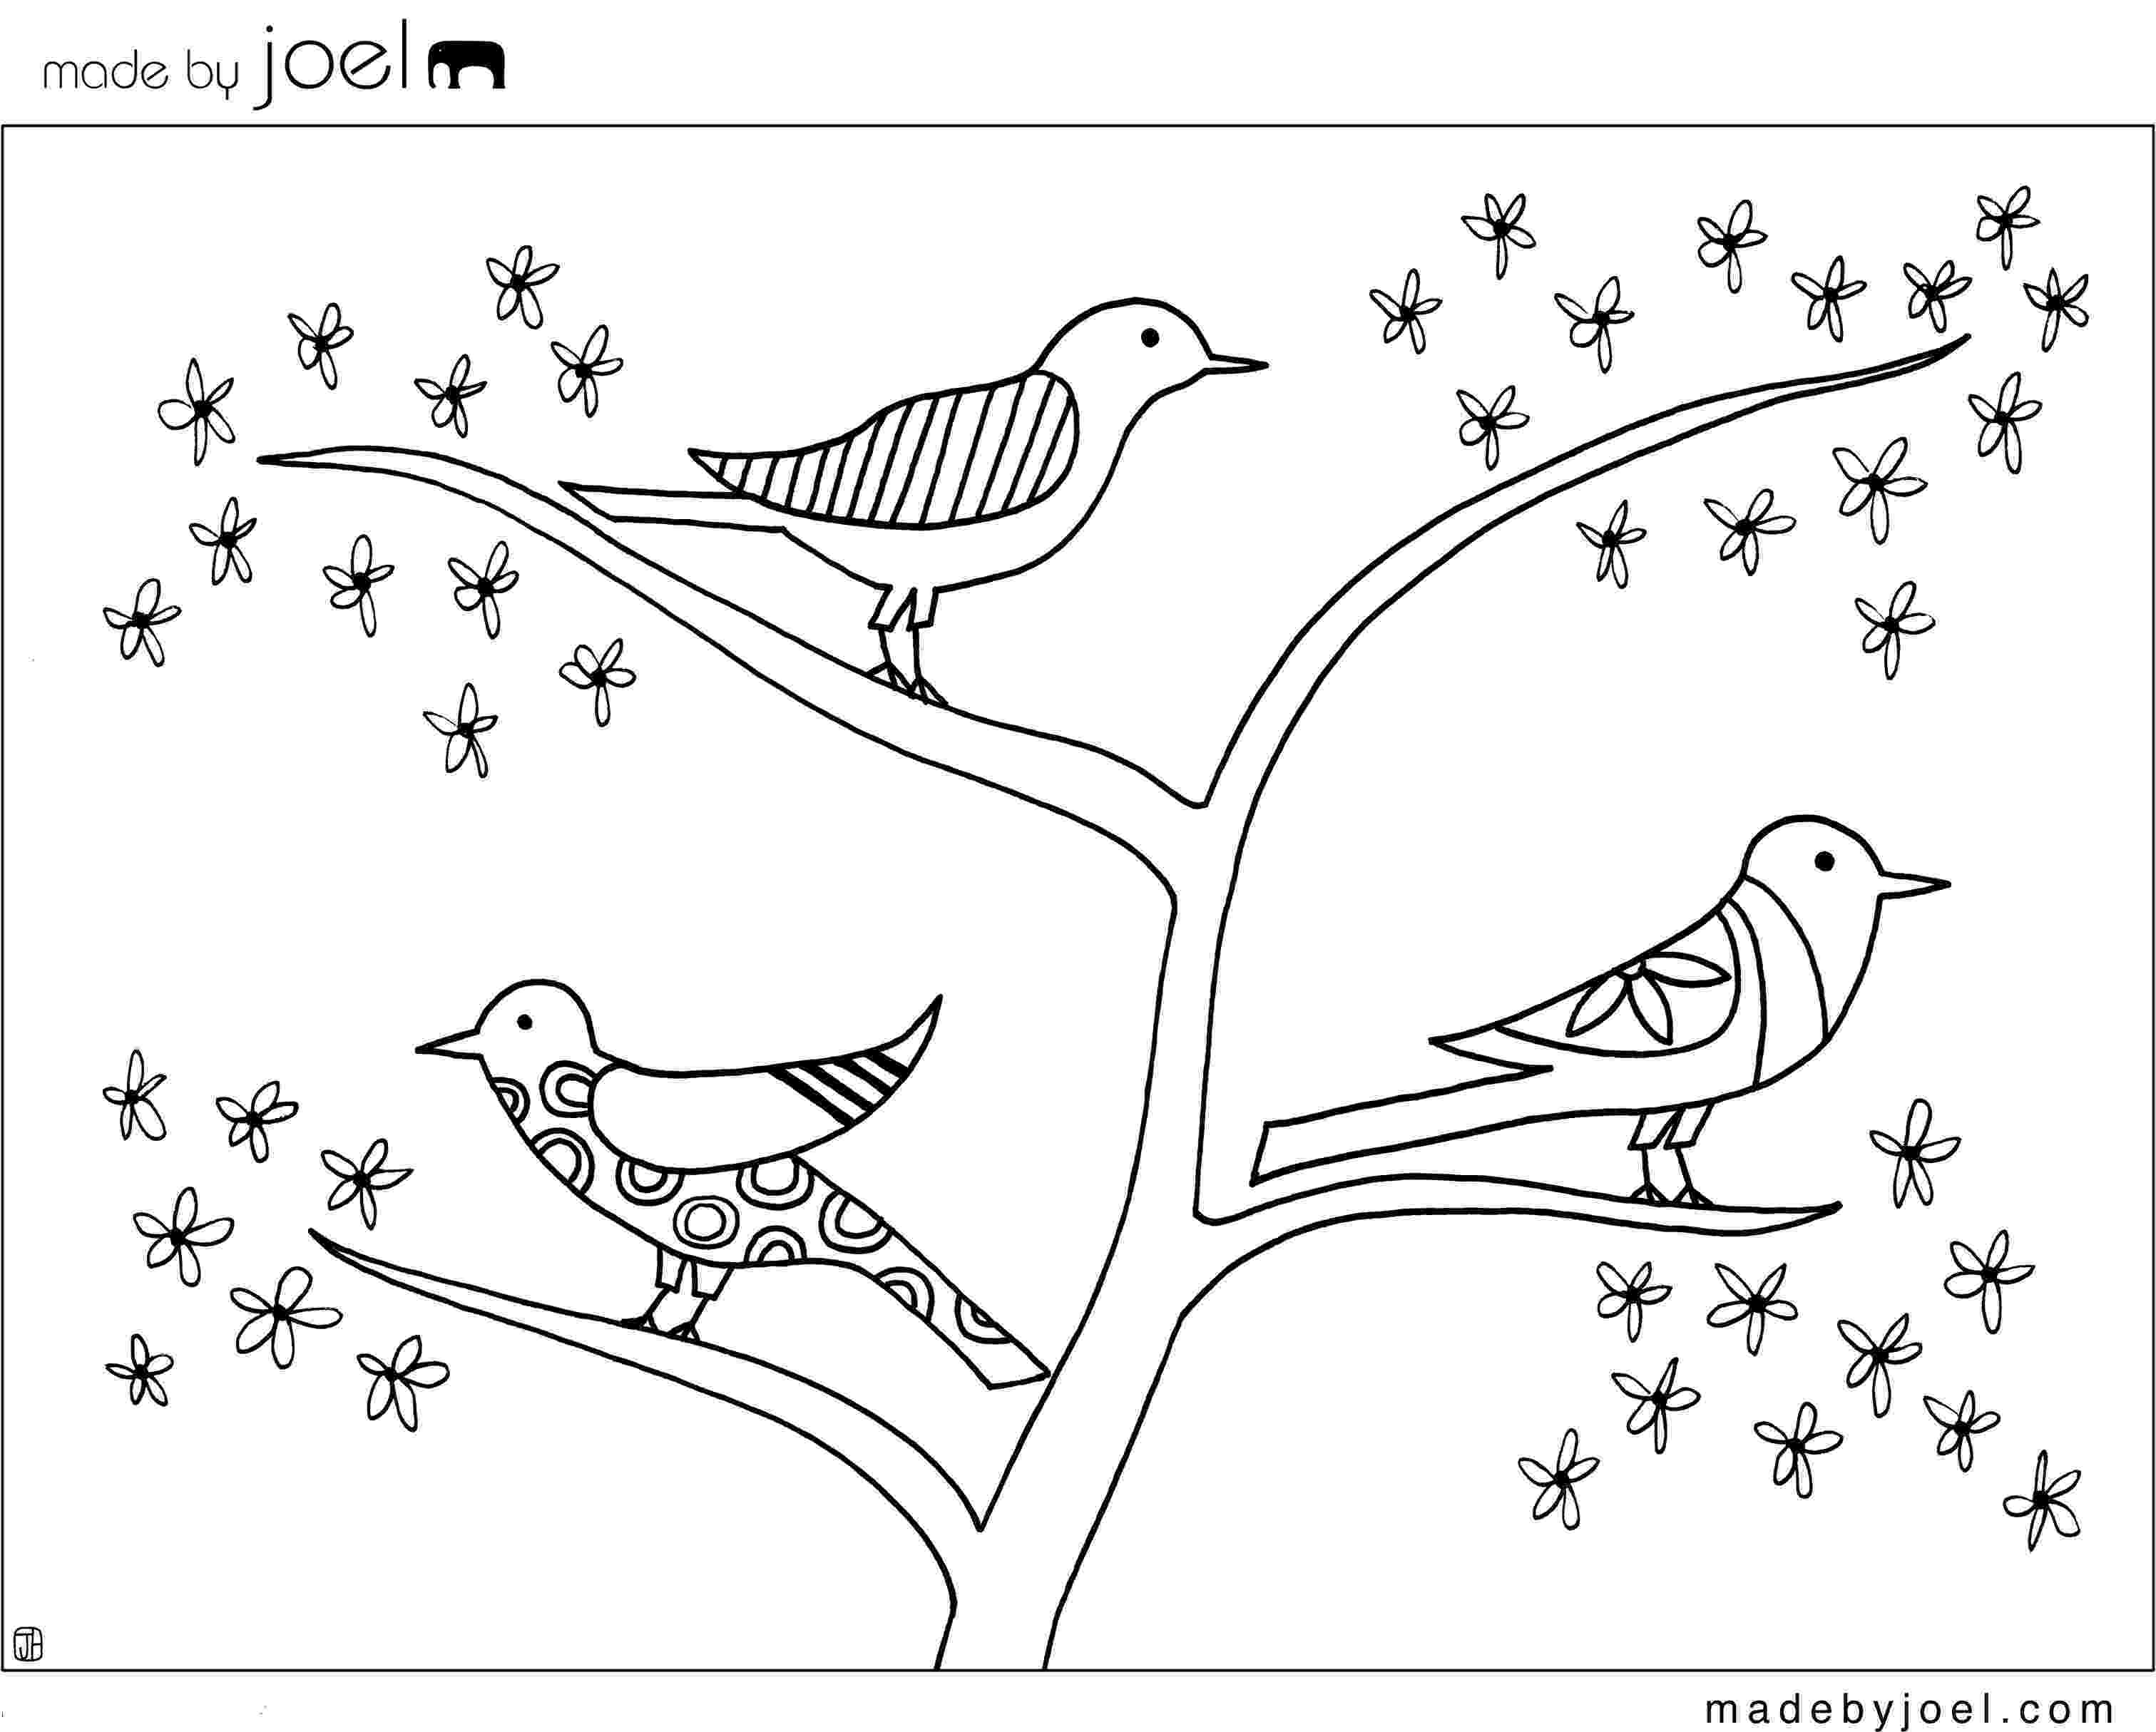 bird coloring images bird coloring pages images bird coloring